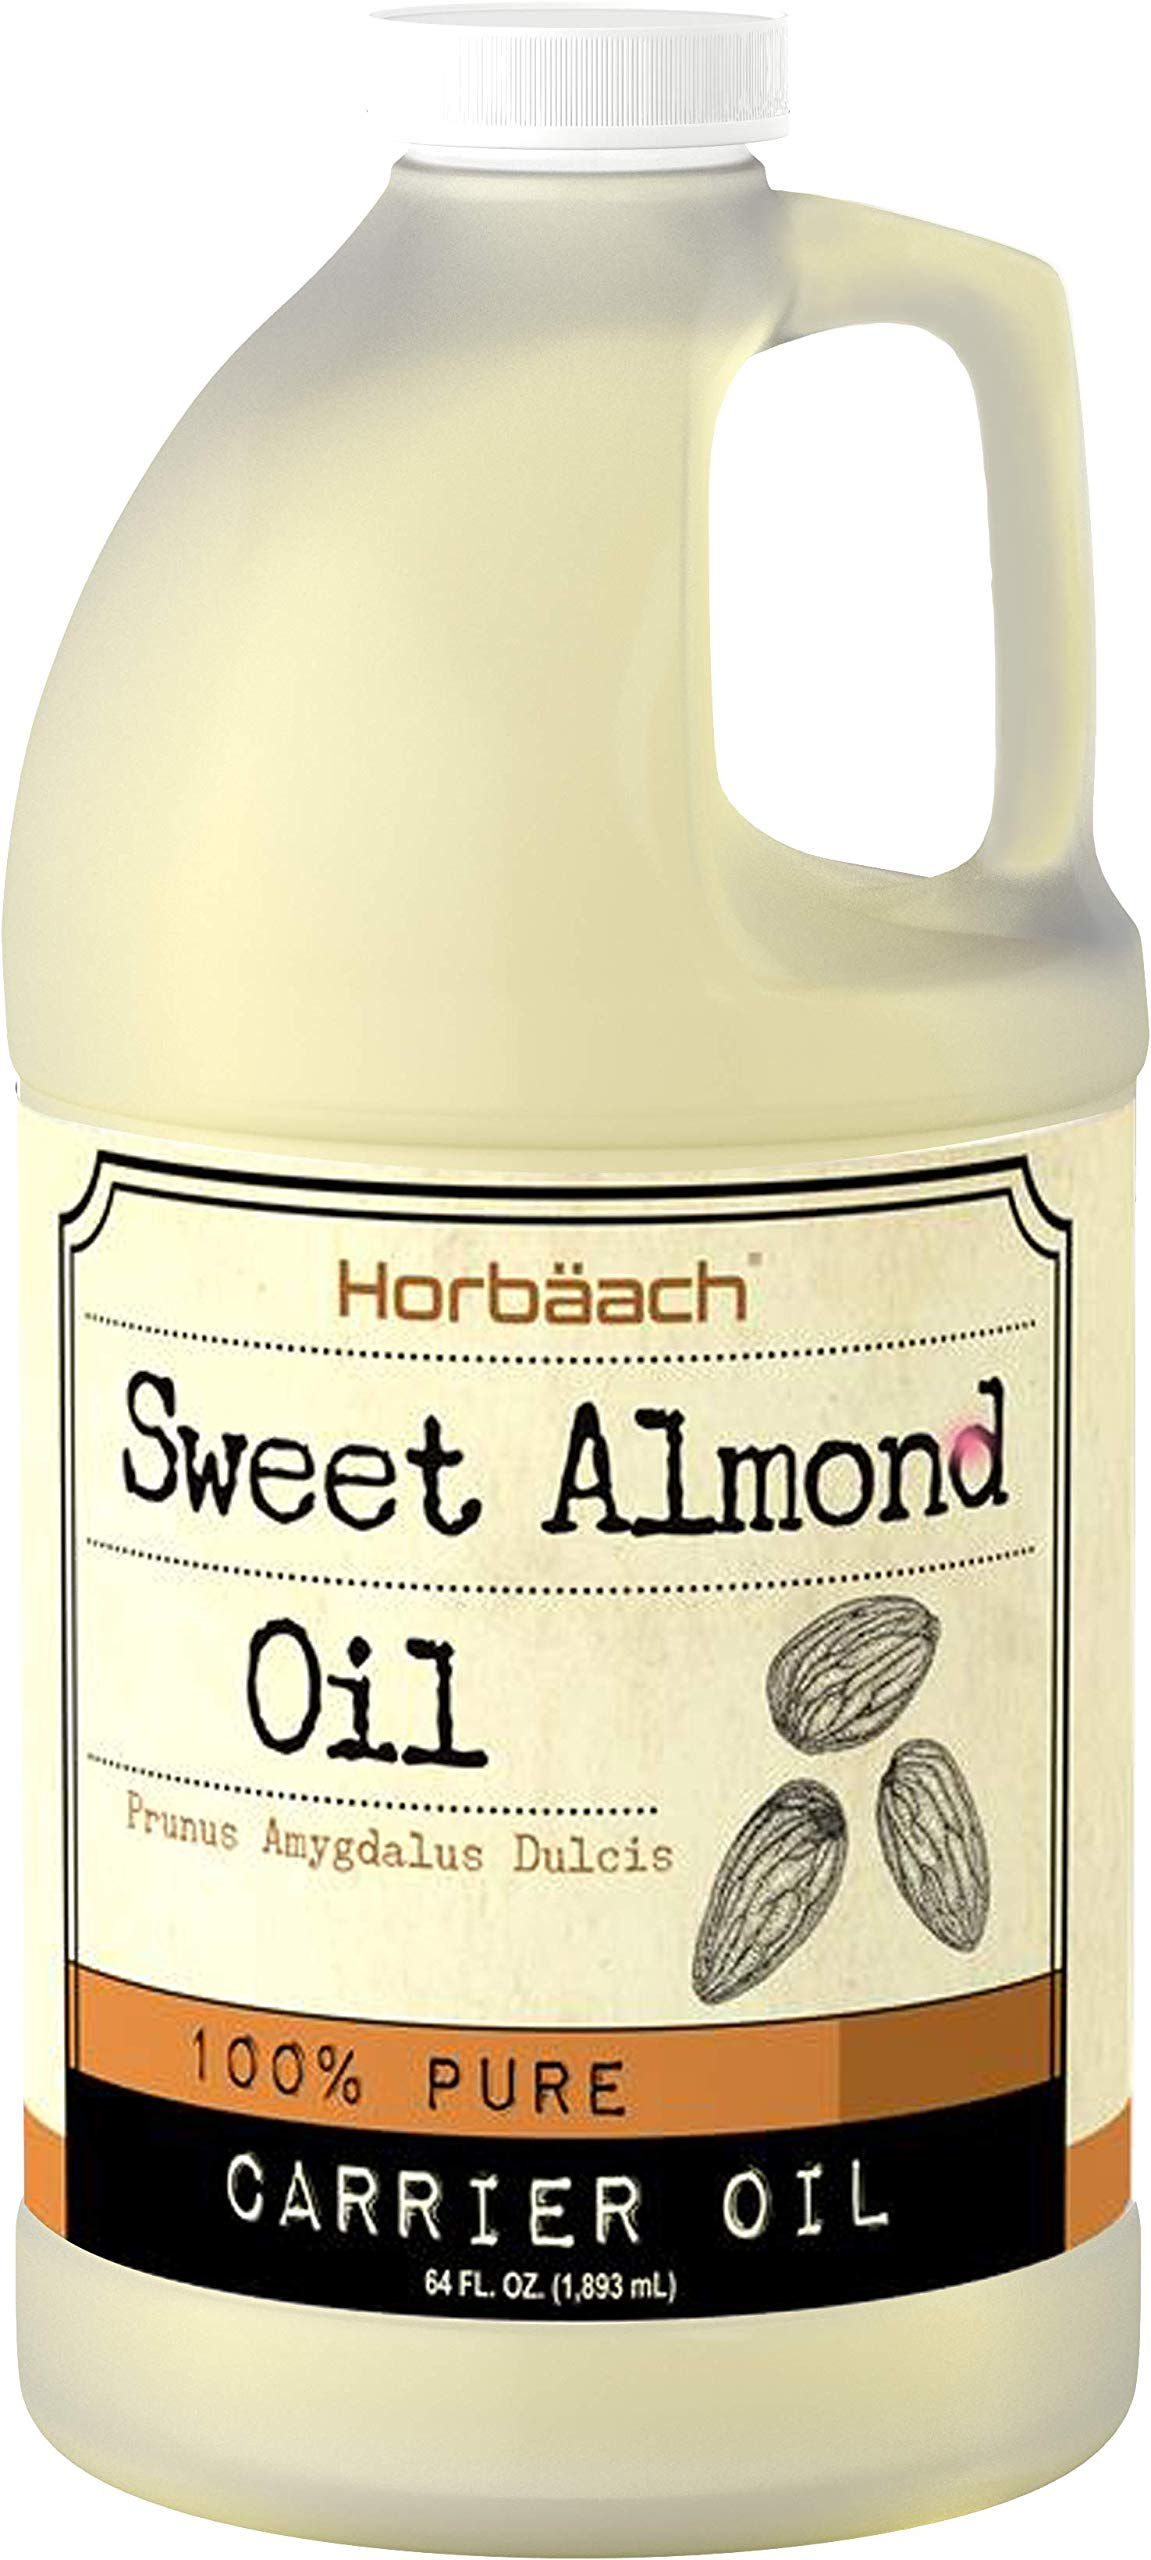 Horbaach Sweet Almond Oil 64 fl oz 100% Pure | for Hair, Face & Skin | Expeller Pressed | Vegetarian, Non-GMO by Horbäach